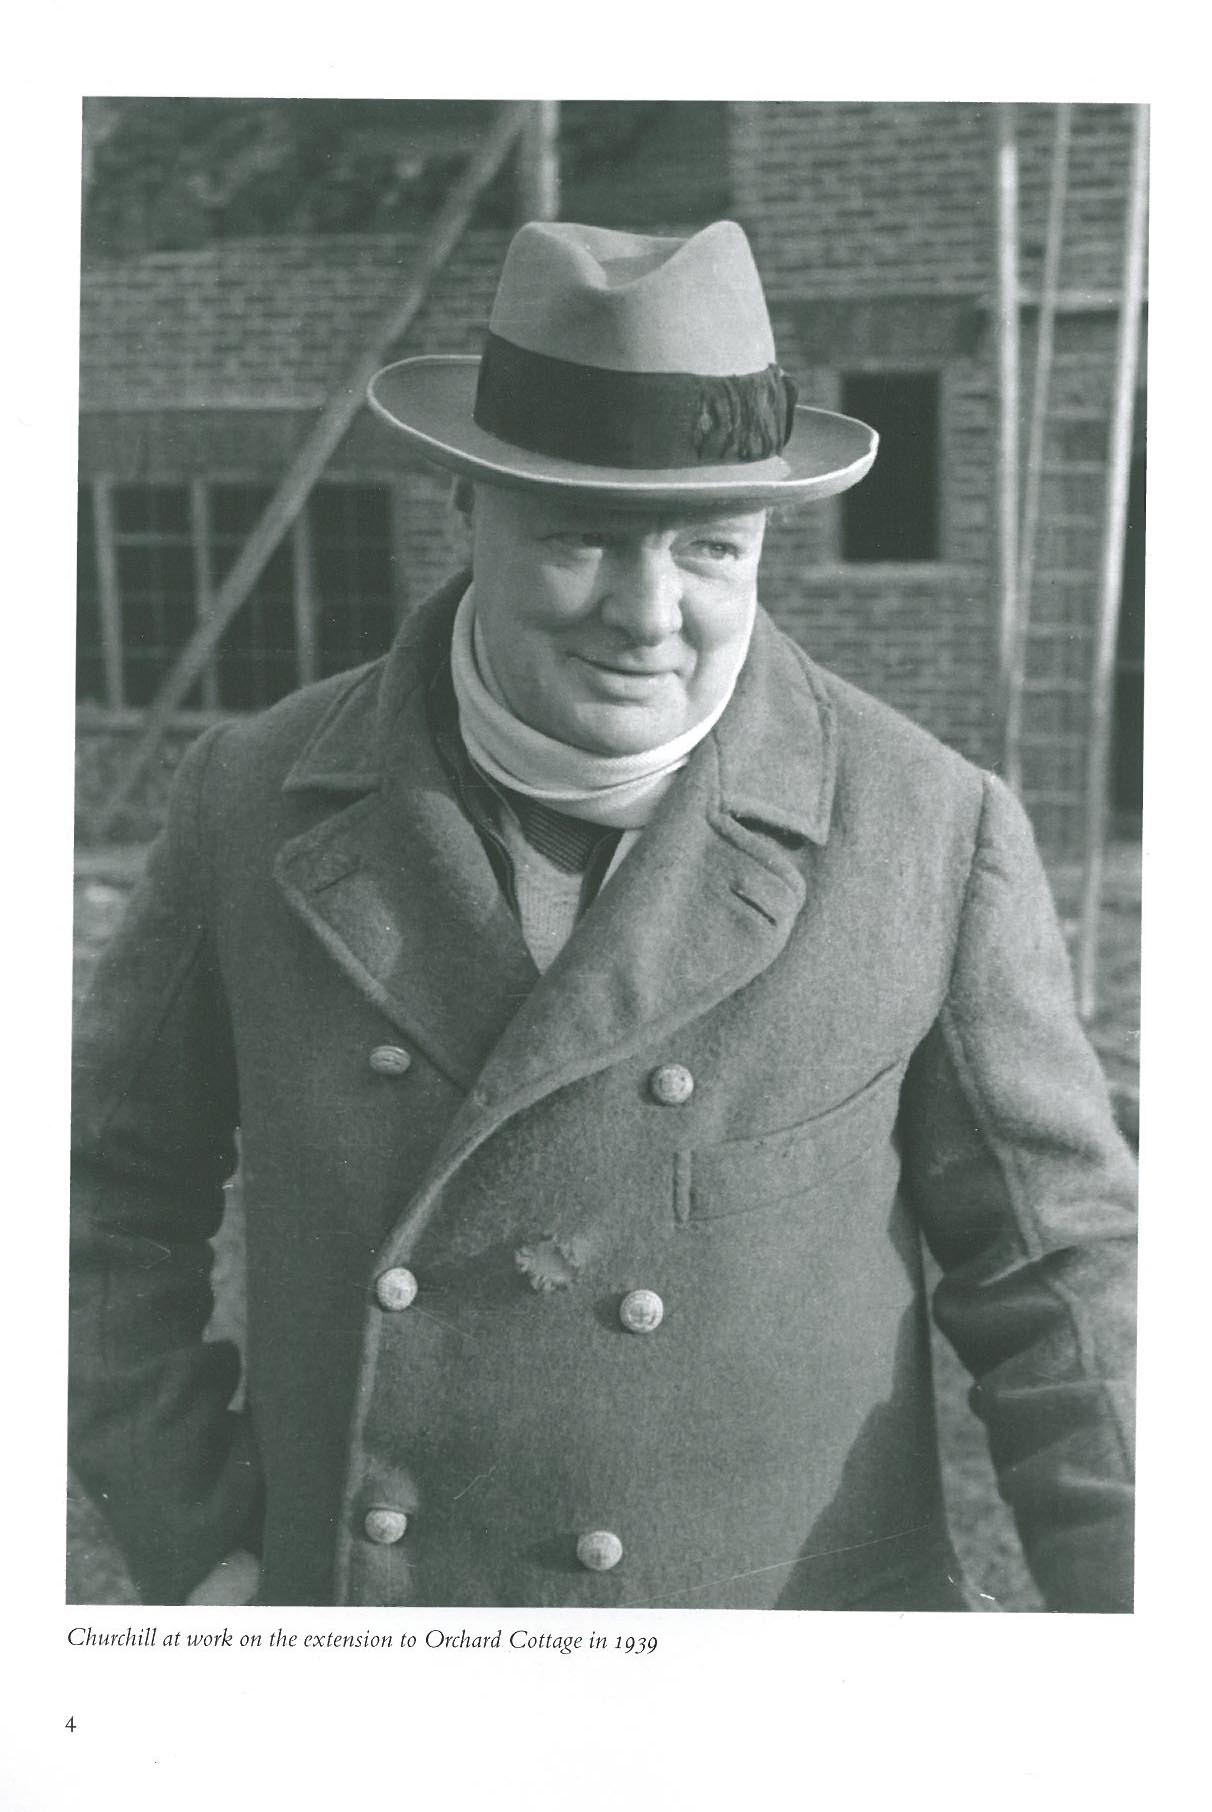 Winston Churchill in 1939. In the background, exterior renovations of Chartwell are underway. Image courtesy of The National Trust.